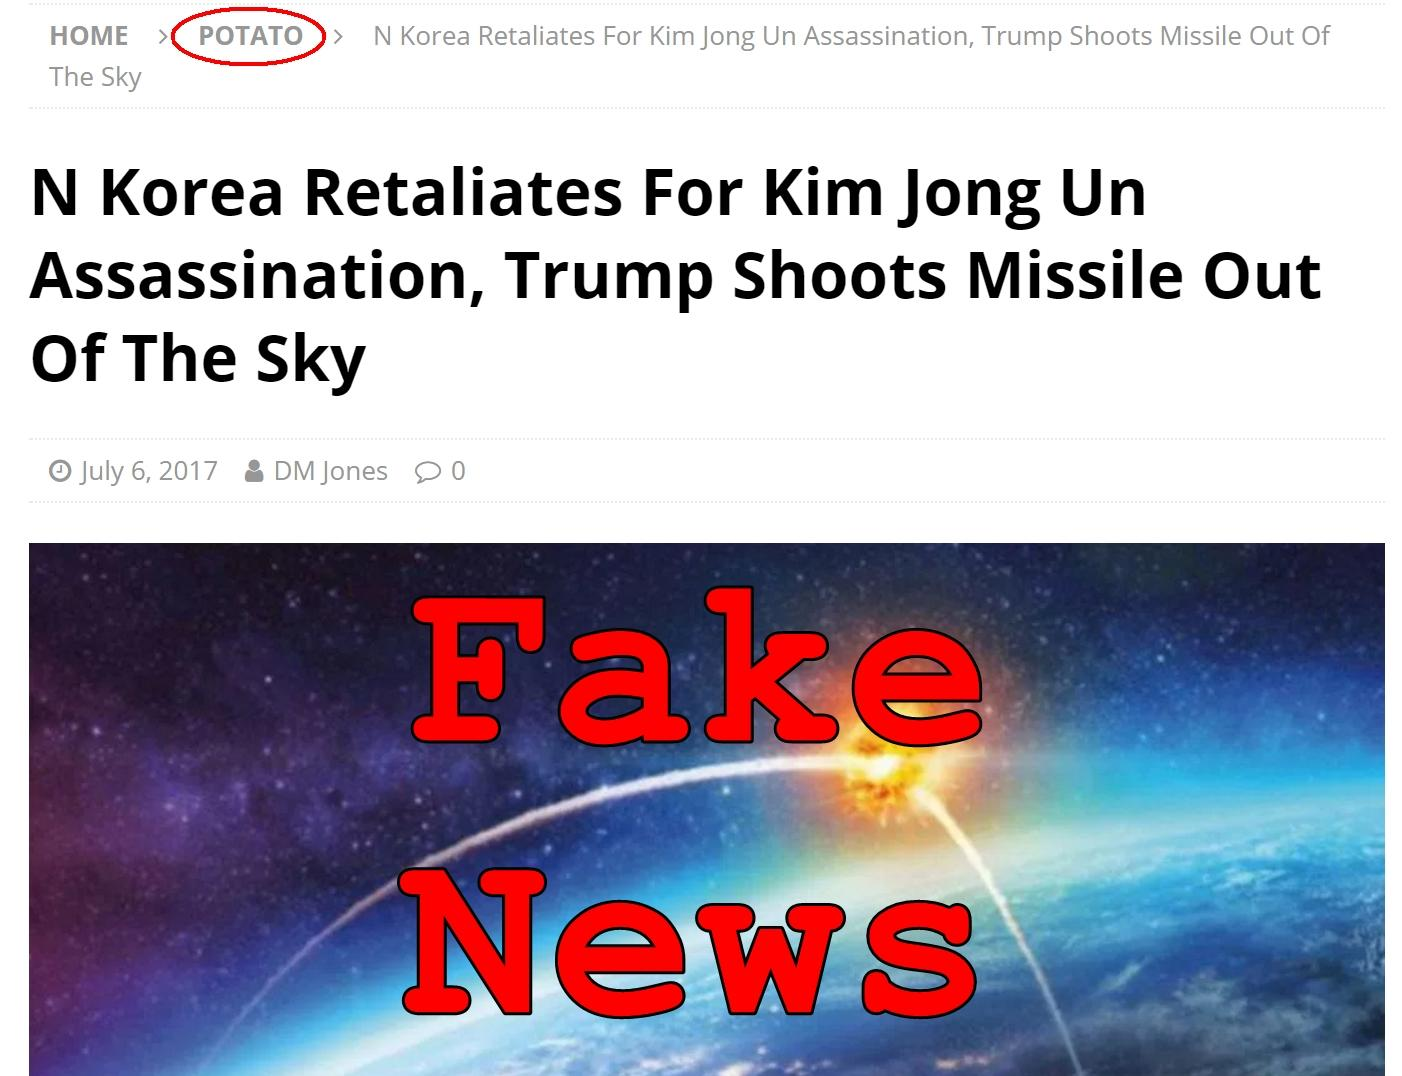 Fake News: Kim Jong Un NOT Assassinated, NO Missile Retalliation By New Dictator